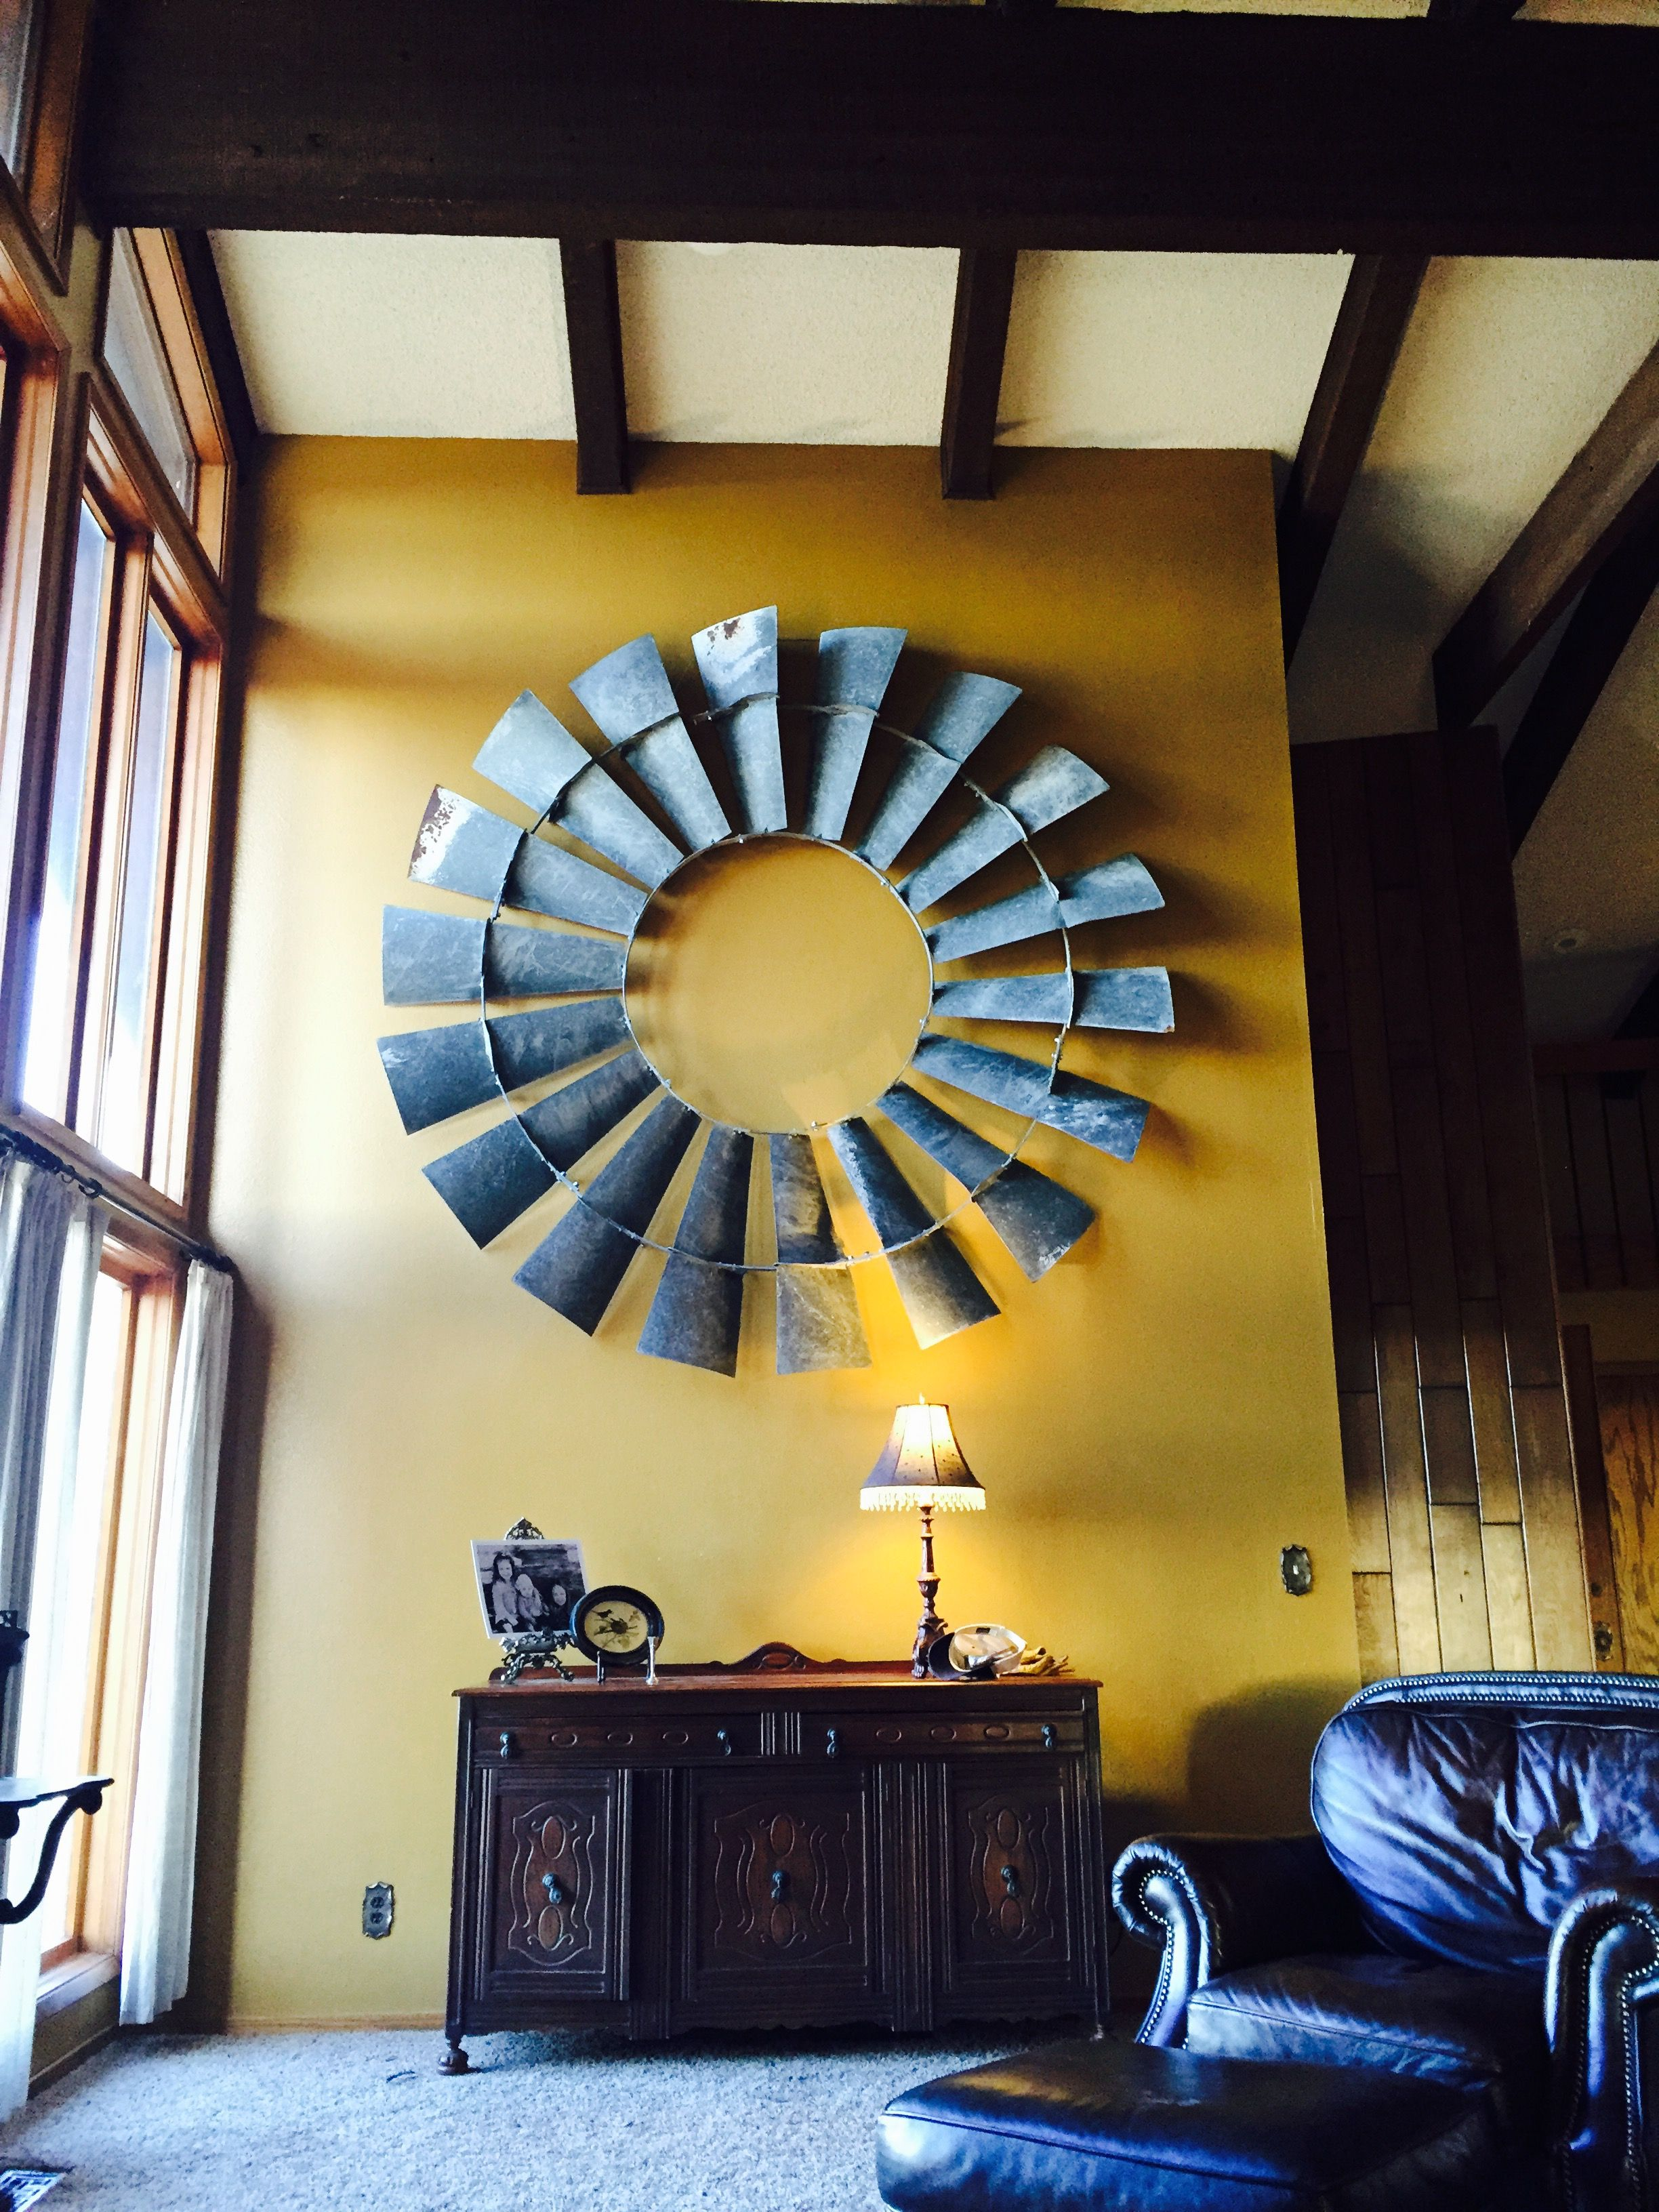 Windmill windmill decor old windmill | Western decor | Pinterest ...